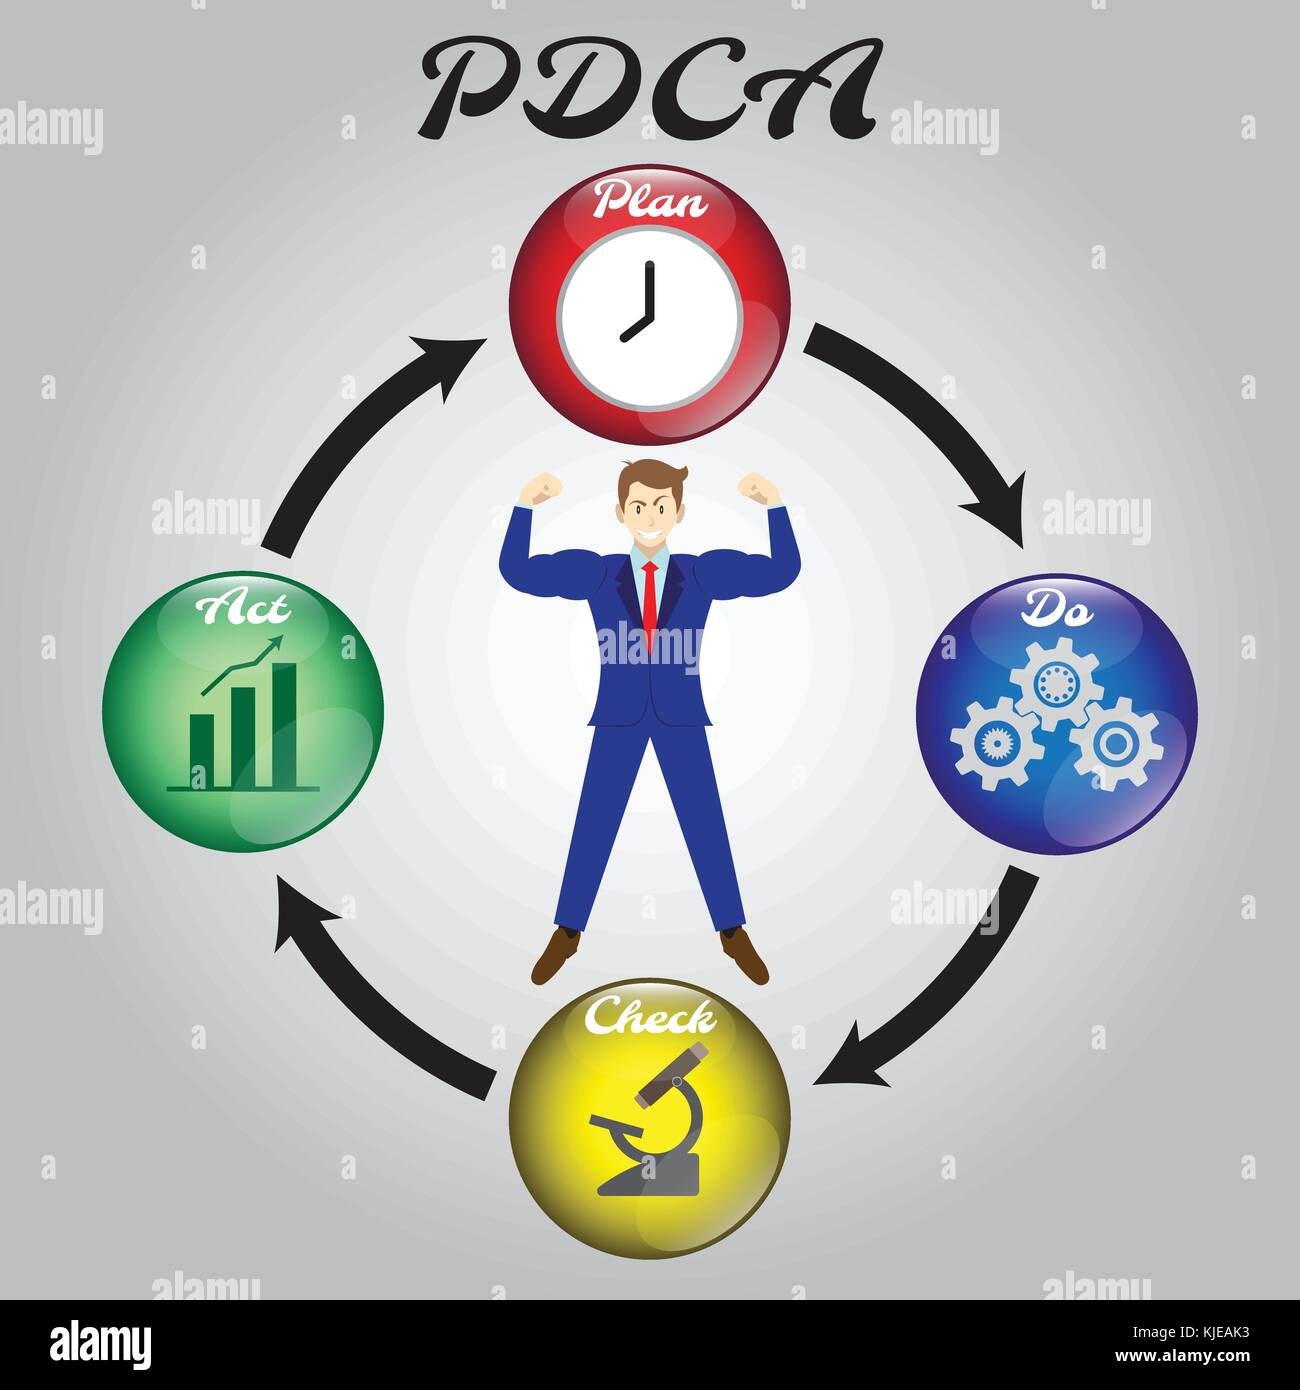 Pdca Diagram Plan Do Check Act Colorful Crystal Balls Including Icons Inside Clock Cogwheels Microscope Bar Line Graph